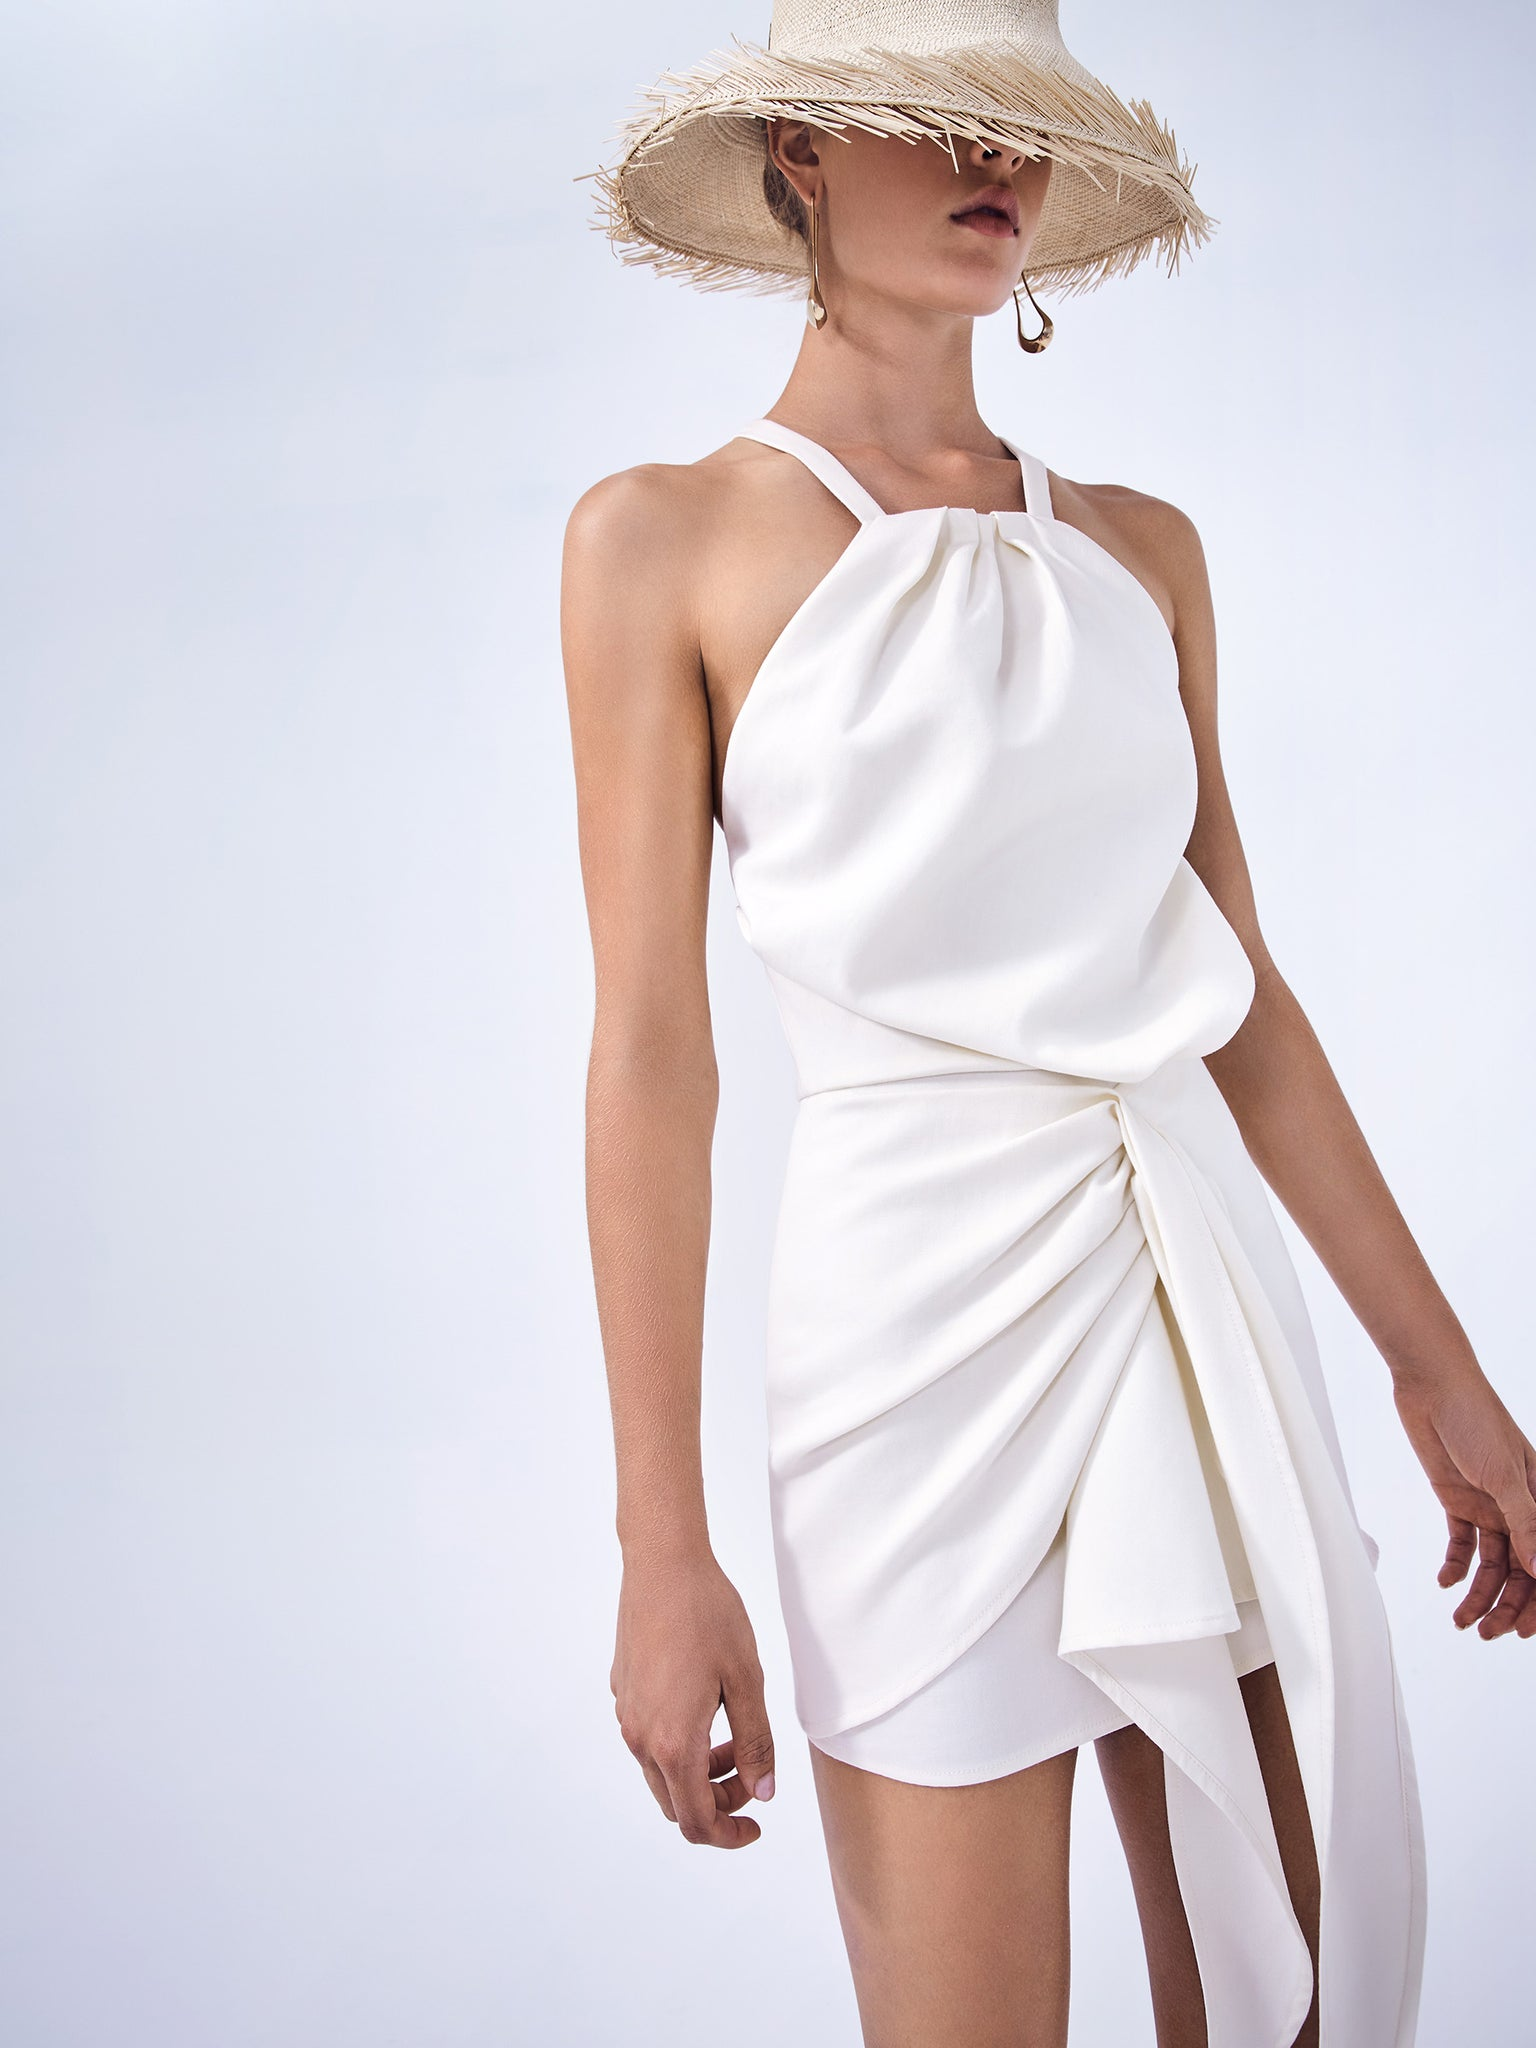 Alexis Adriena mini dress in white. Sarong skirt and halter neckline that criss crosses in the back. - Rear View